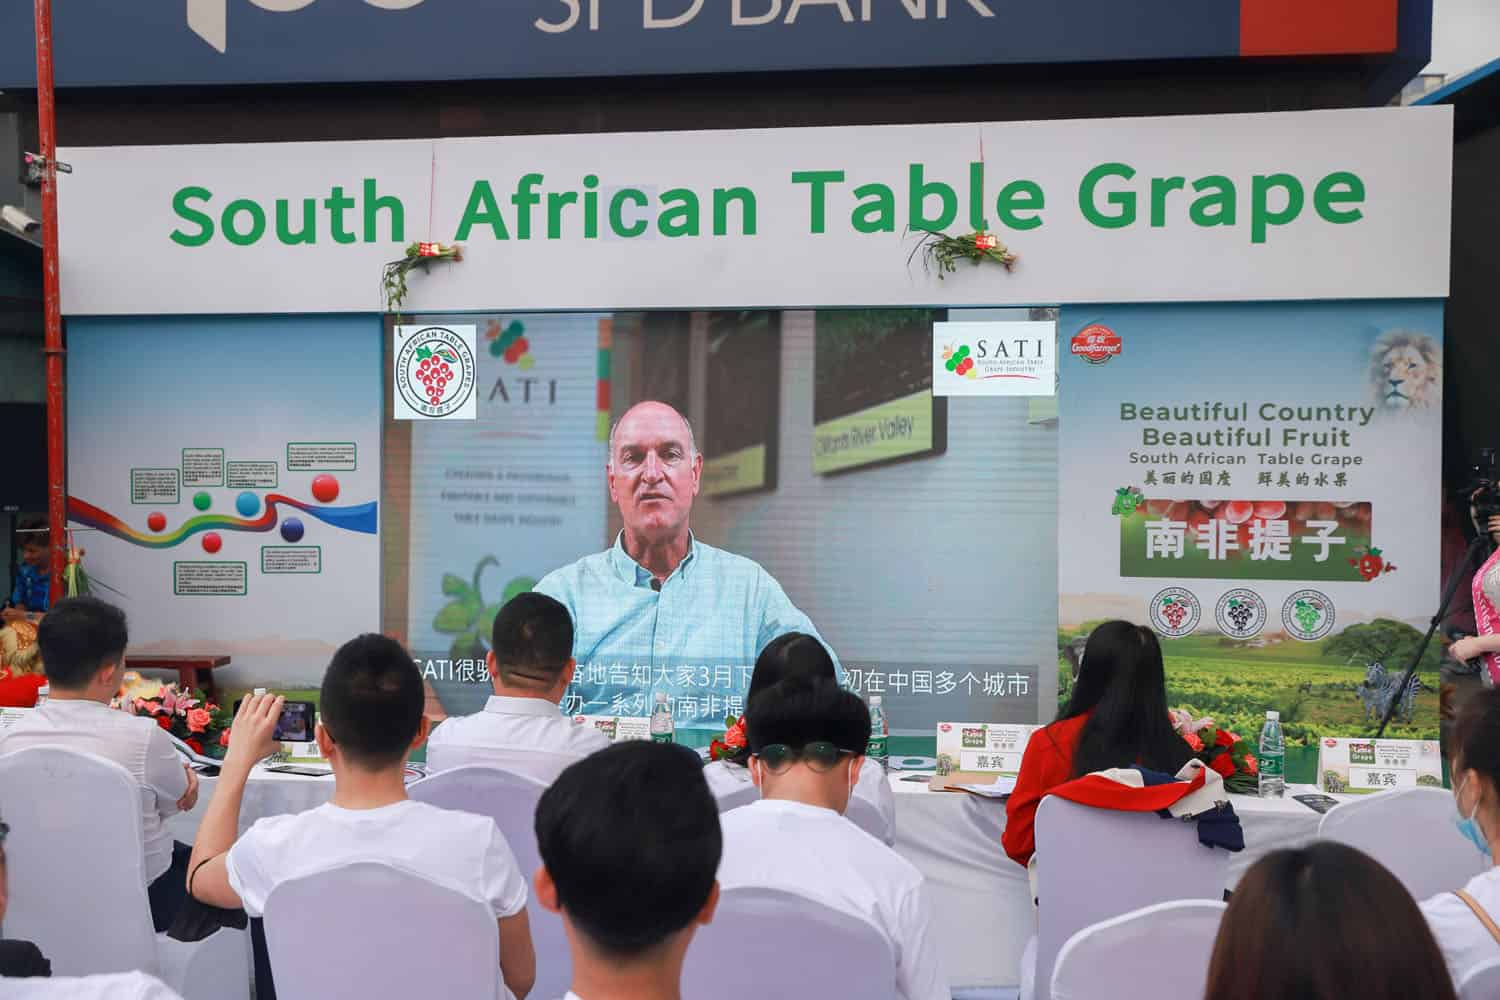 Willem Bestbier, chief executive of SATI, addresses the launch of South Africa's table grape campaign in China. Photo: Supplied/Food For Mzansi